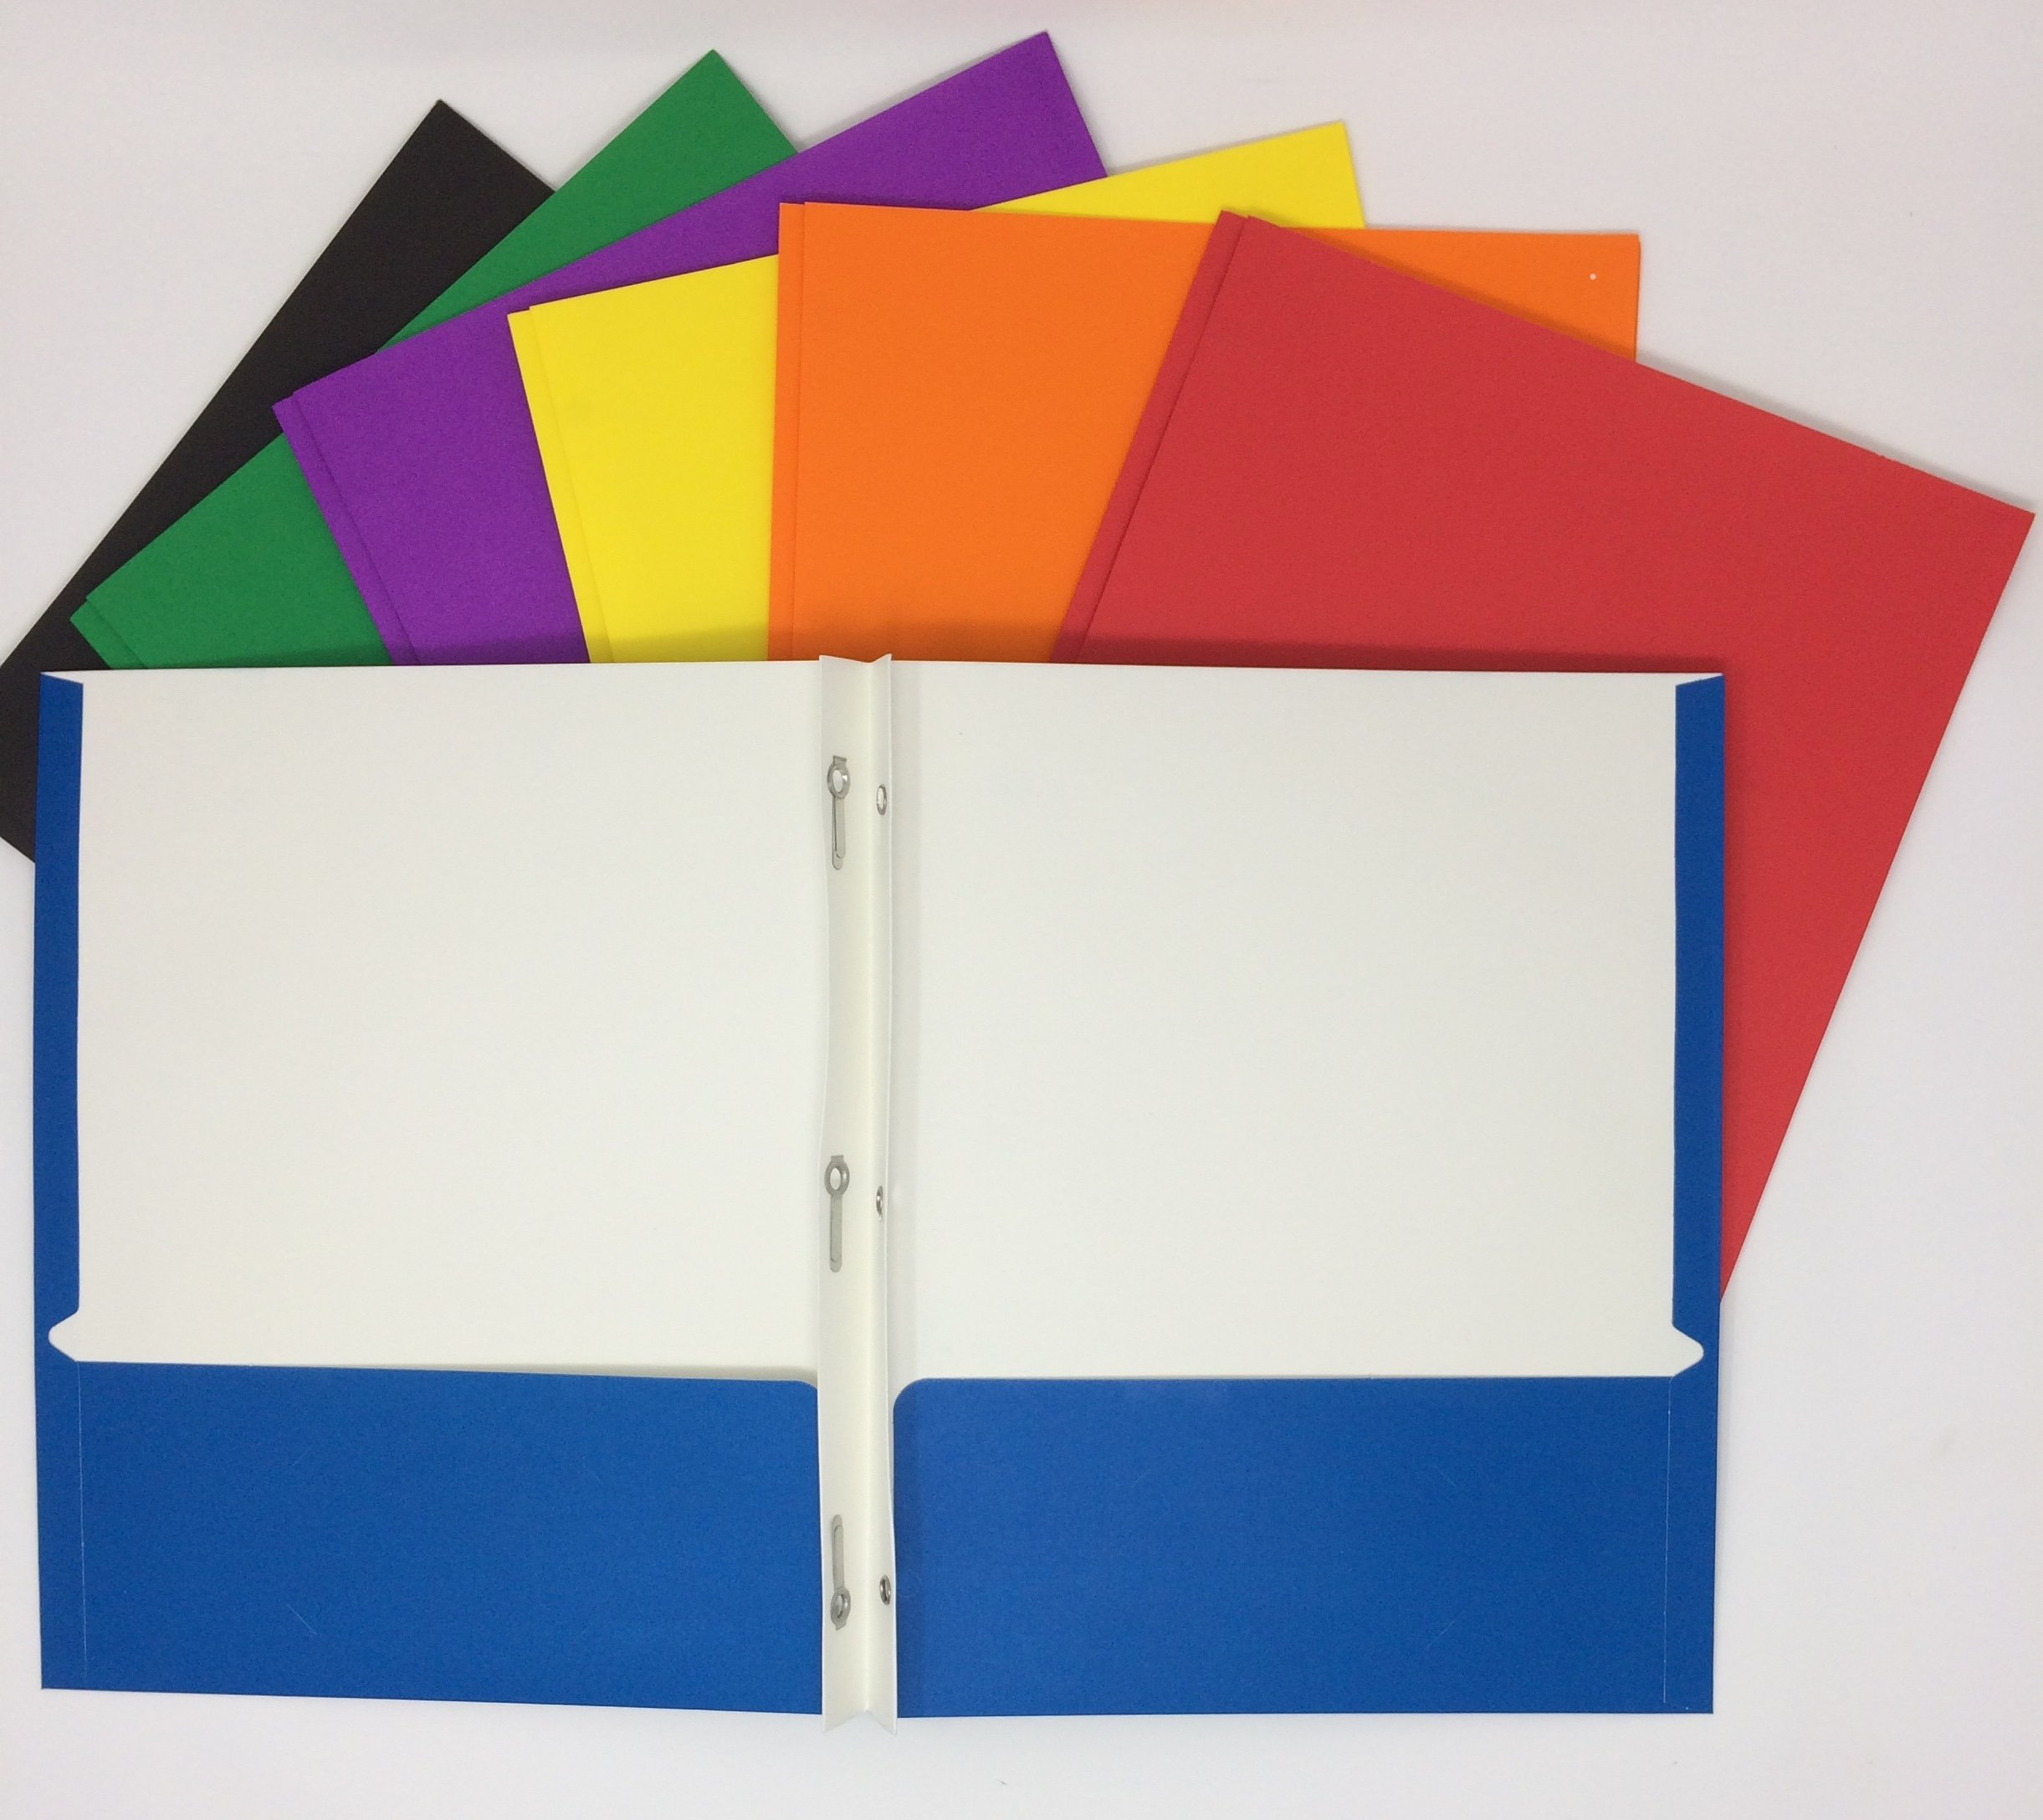 Office Depot Folders for School Set of 7 Two Pocket with 3-Prong Fastener Assorted Colors